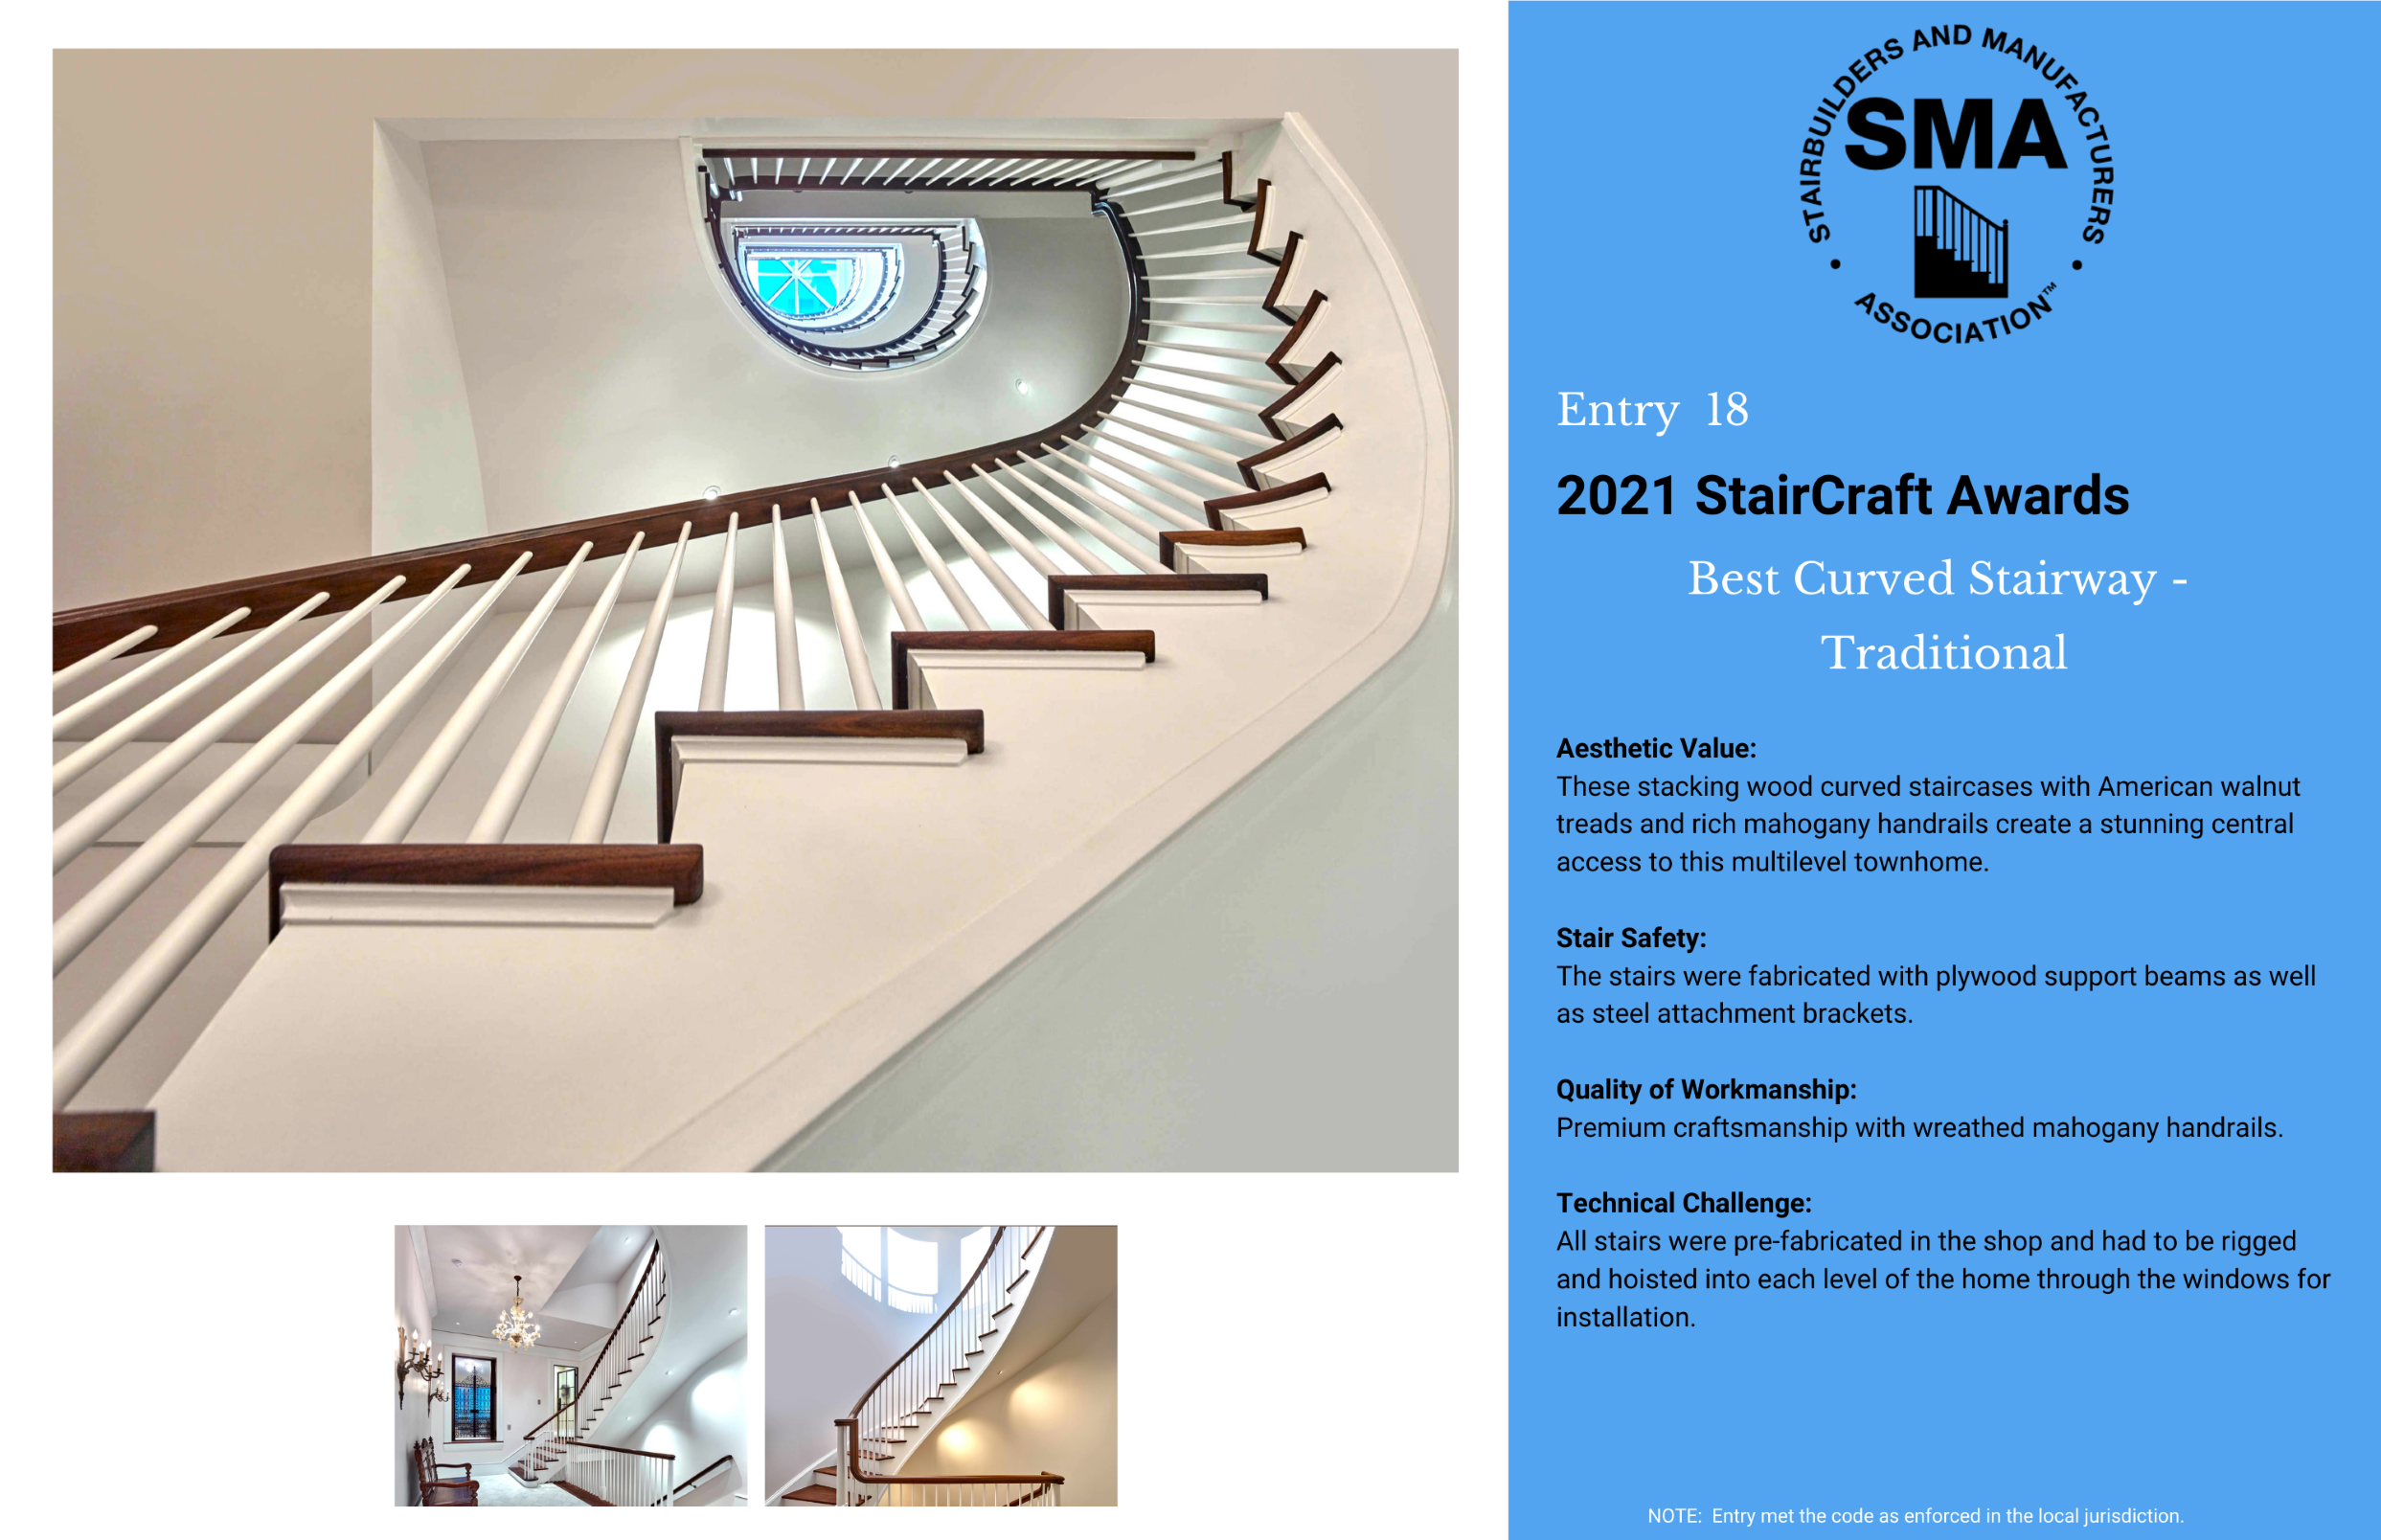 2021 StairCraft Awards Entry 18